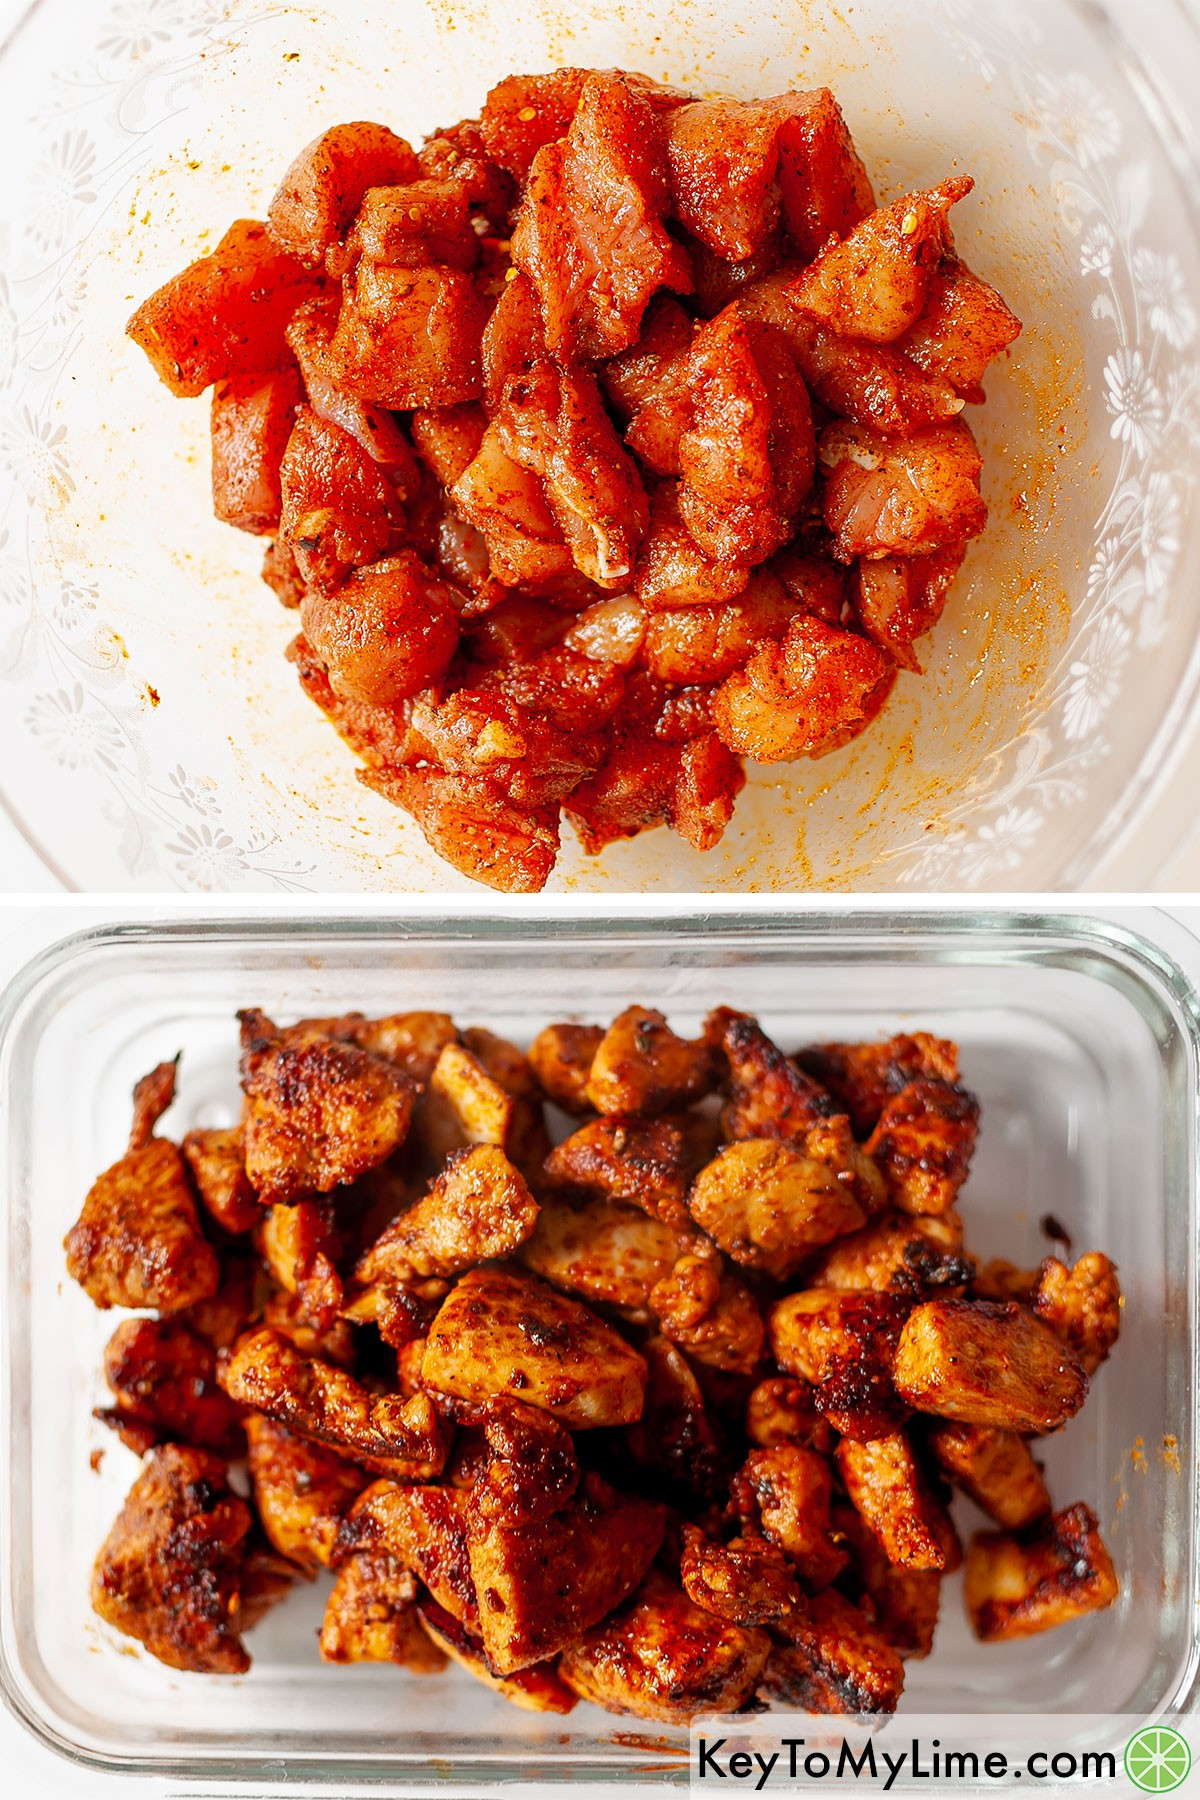 Fajita chicken breast chunks before and after cooking.